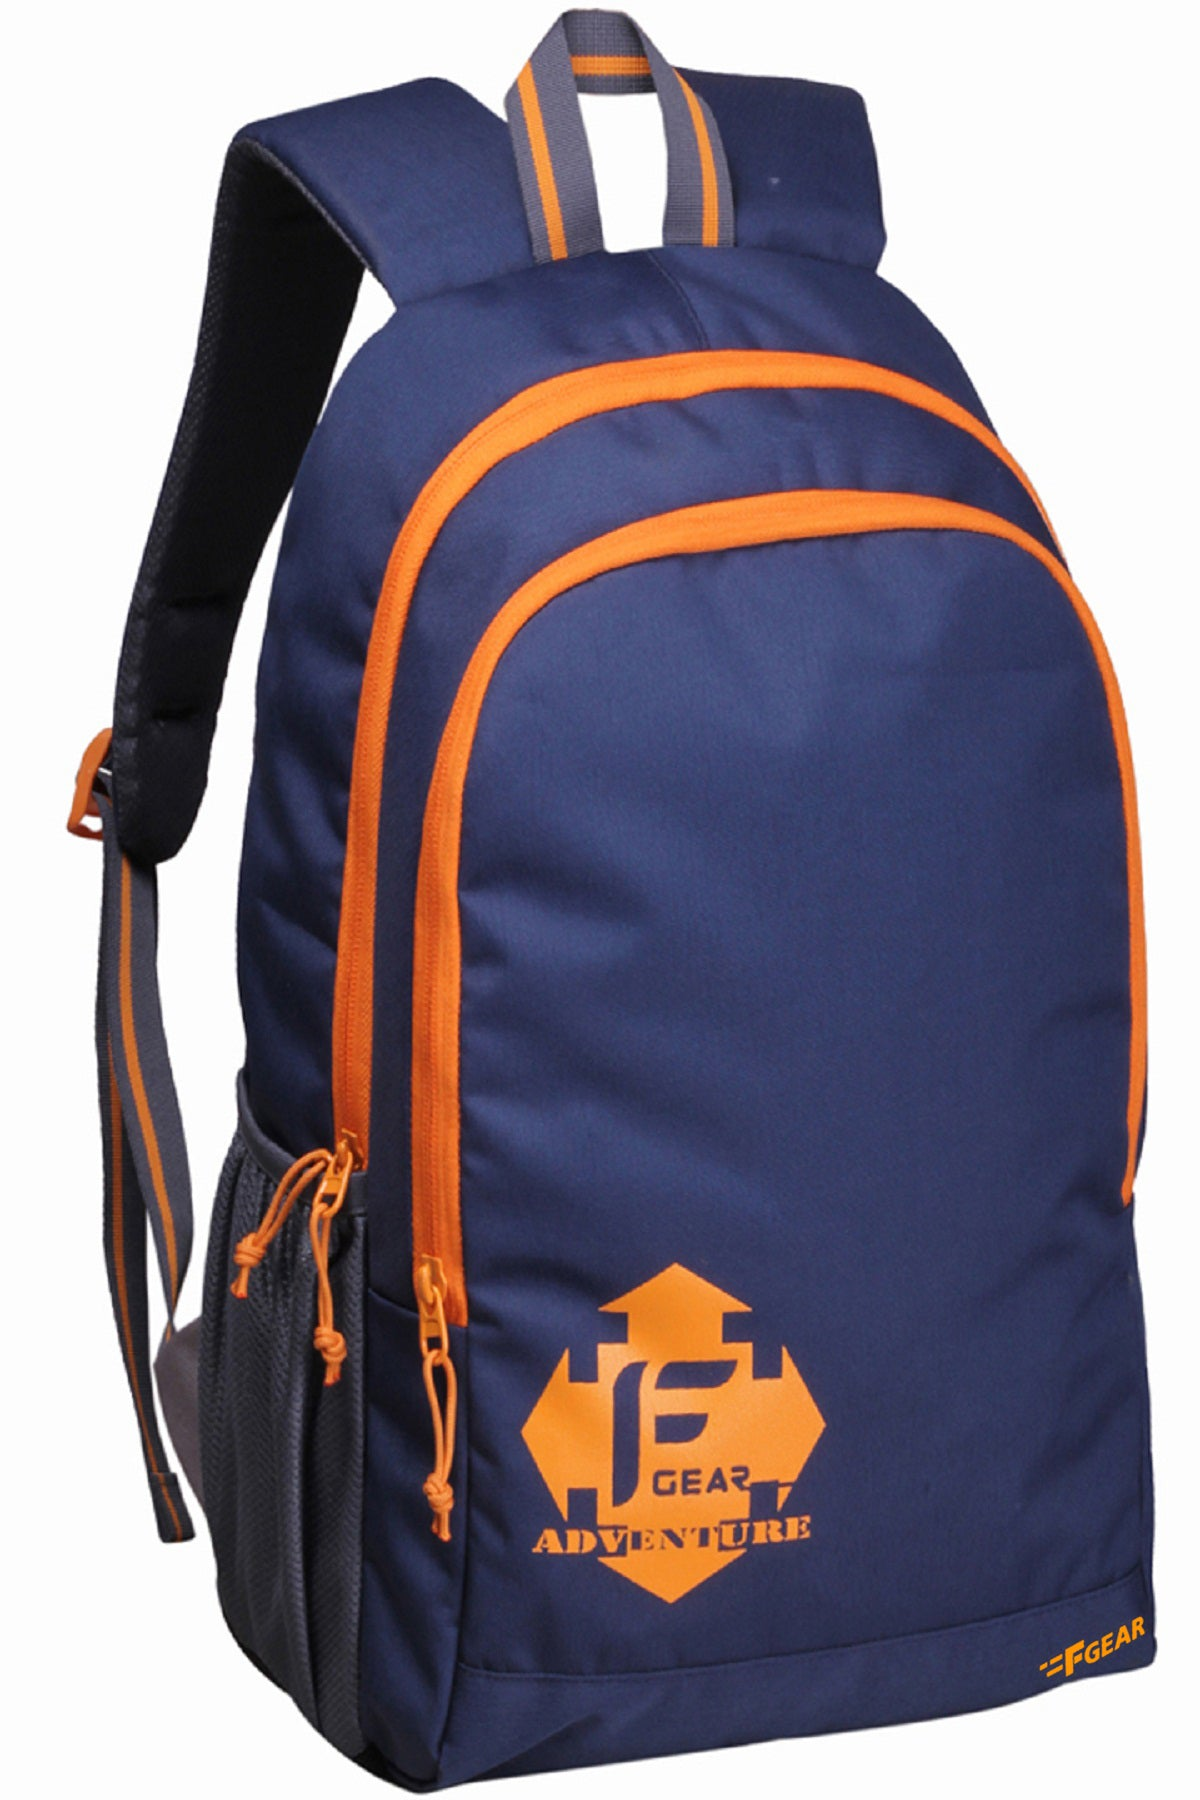 F Gear Castle 22 Ltrs Navyblue Orange Casual Backpack (2181)